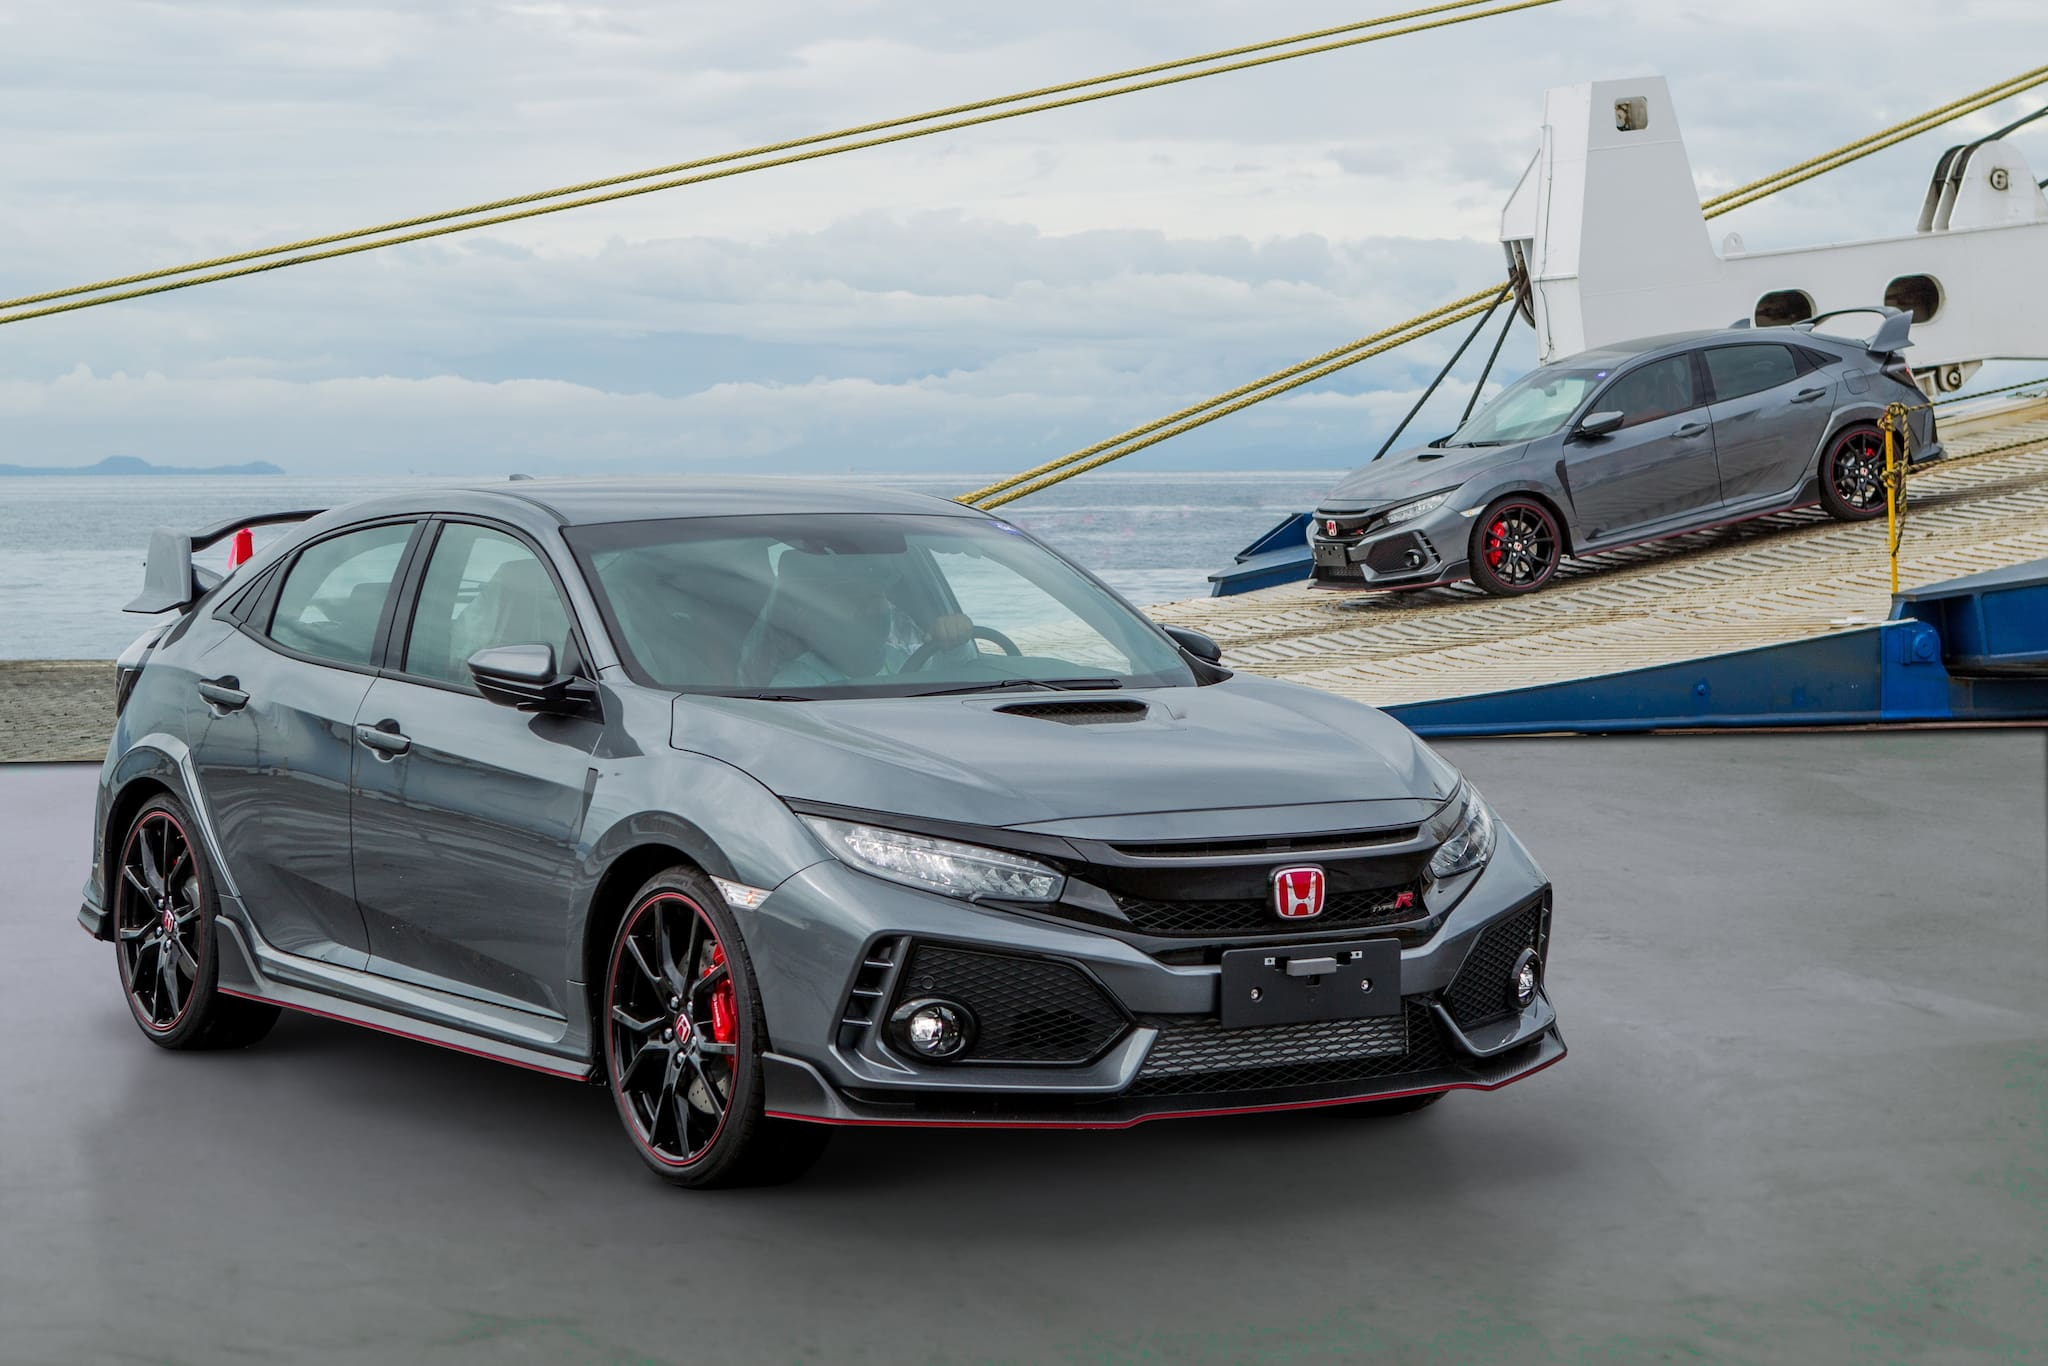 2018 Batch of Honda Civic Type R Units Now in PH, Much to Speculators' Chagrin